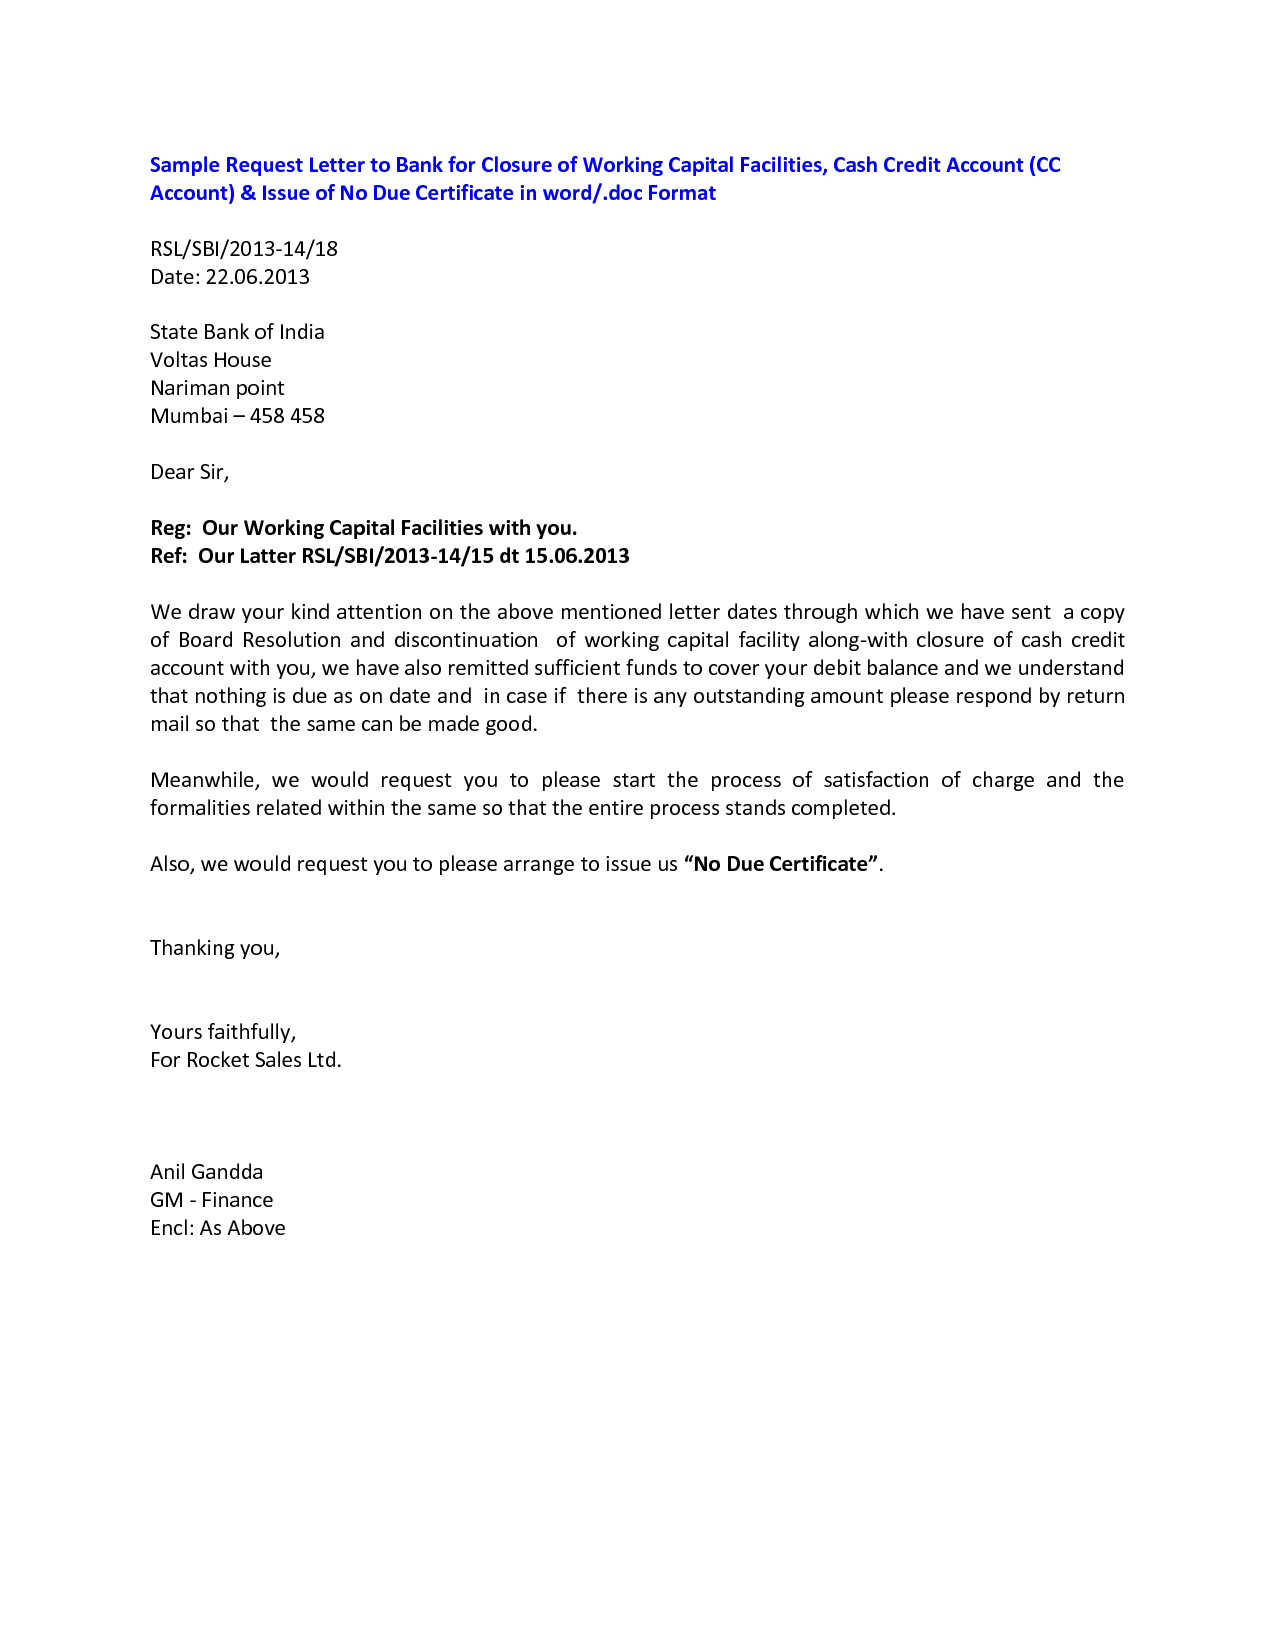 4 information request letter templates pdf free